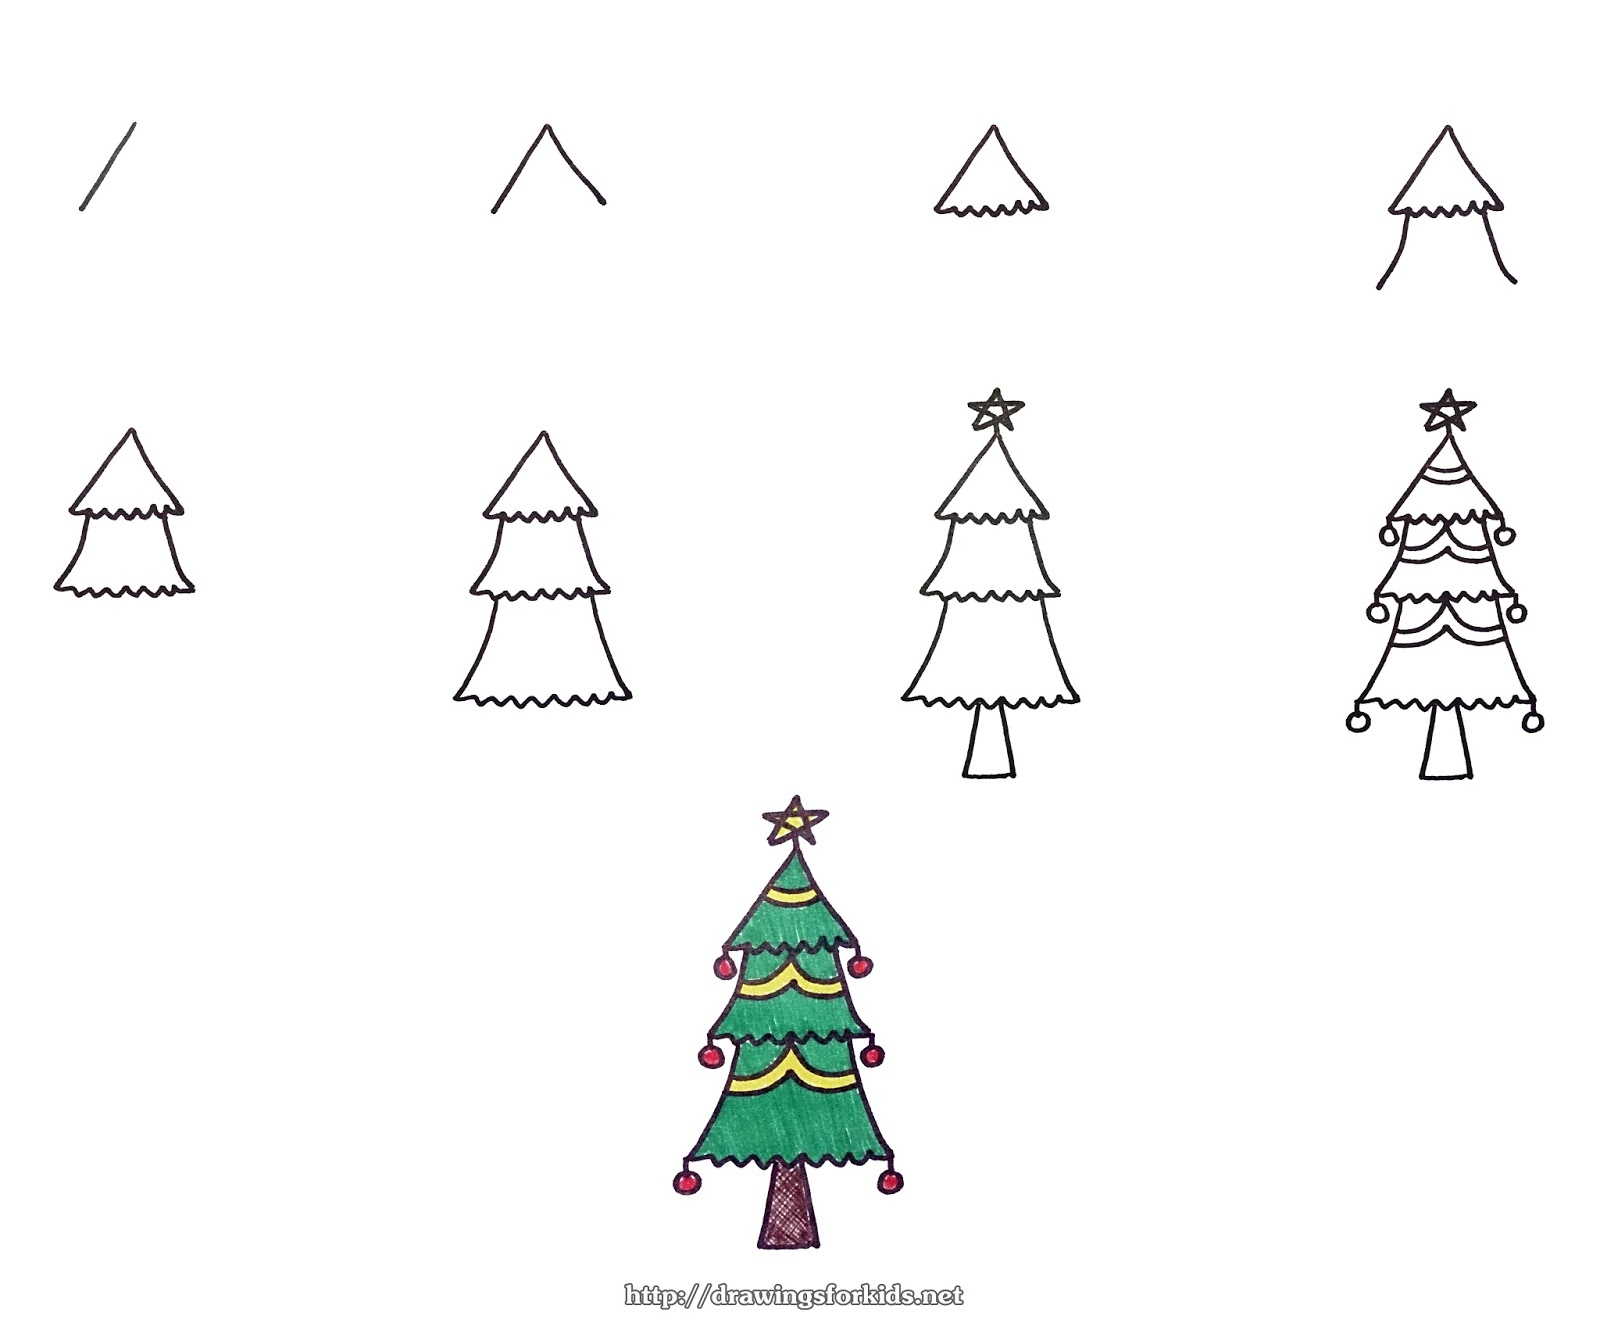 How to draw a Christmas tree for kids - STEP BY STEP - drawingsforkids.net